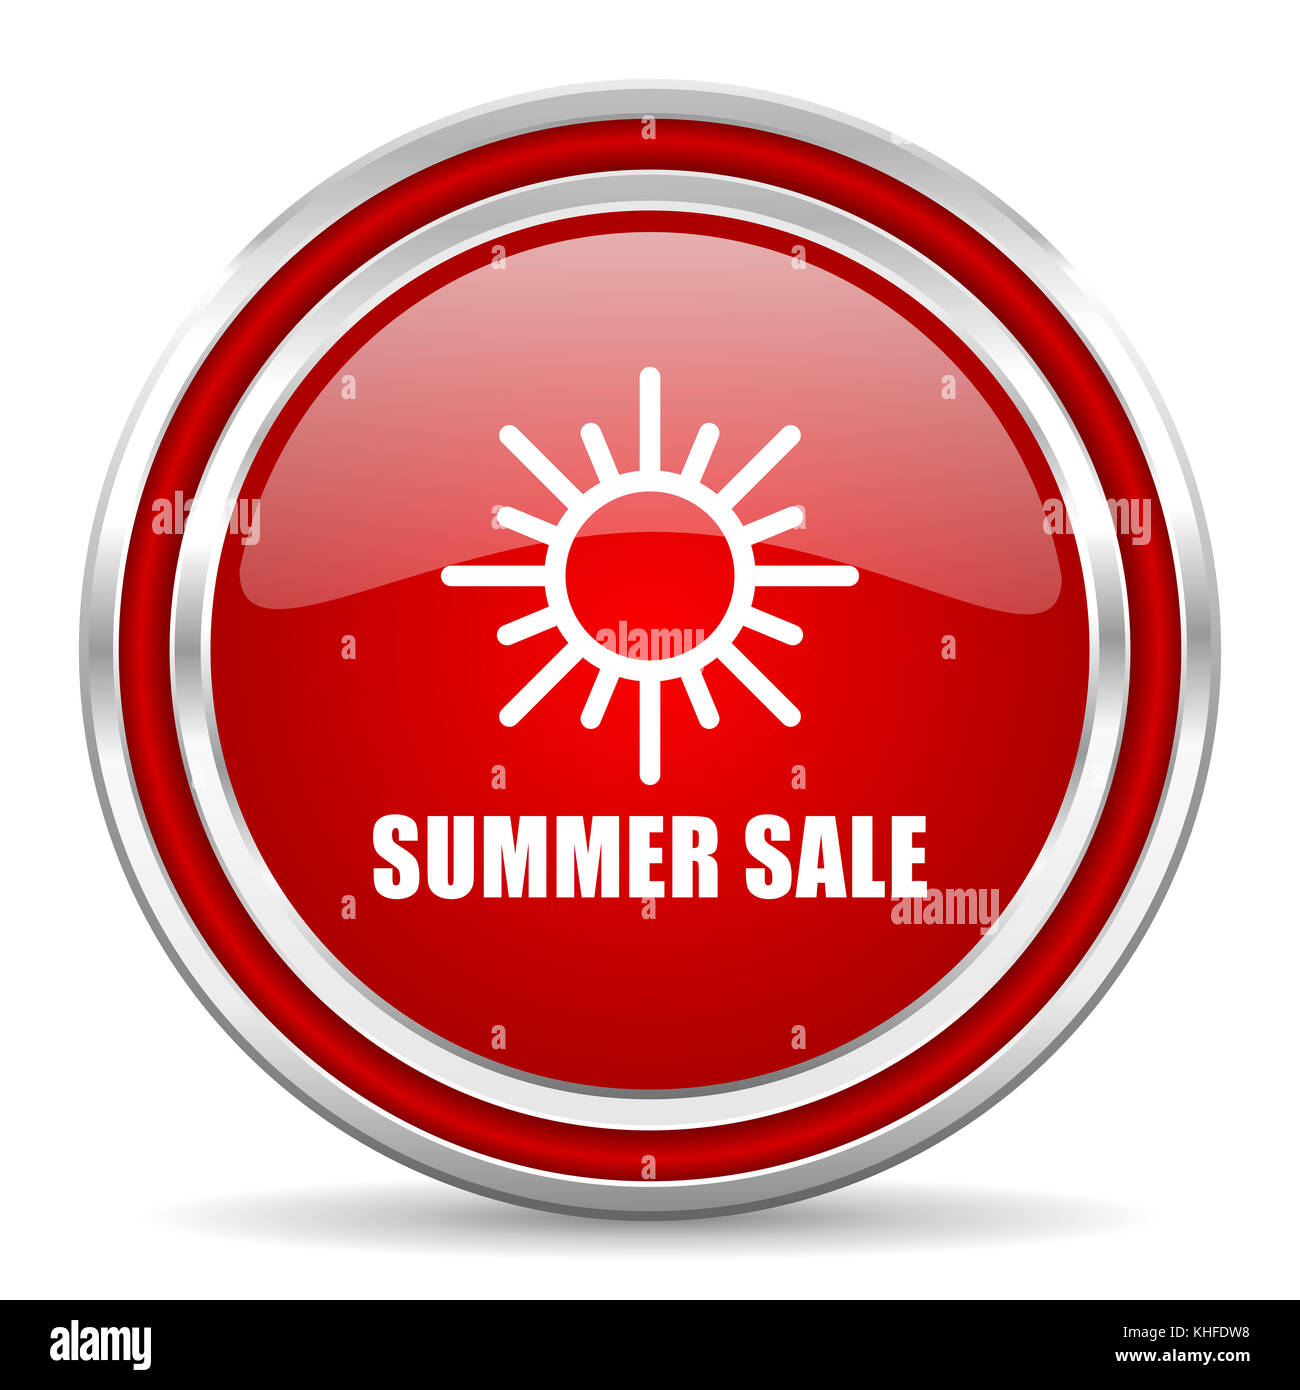 Summer sale red silver metallic chrome border web and mobile phone icon on white background with shadow - Stock Image